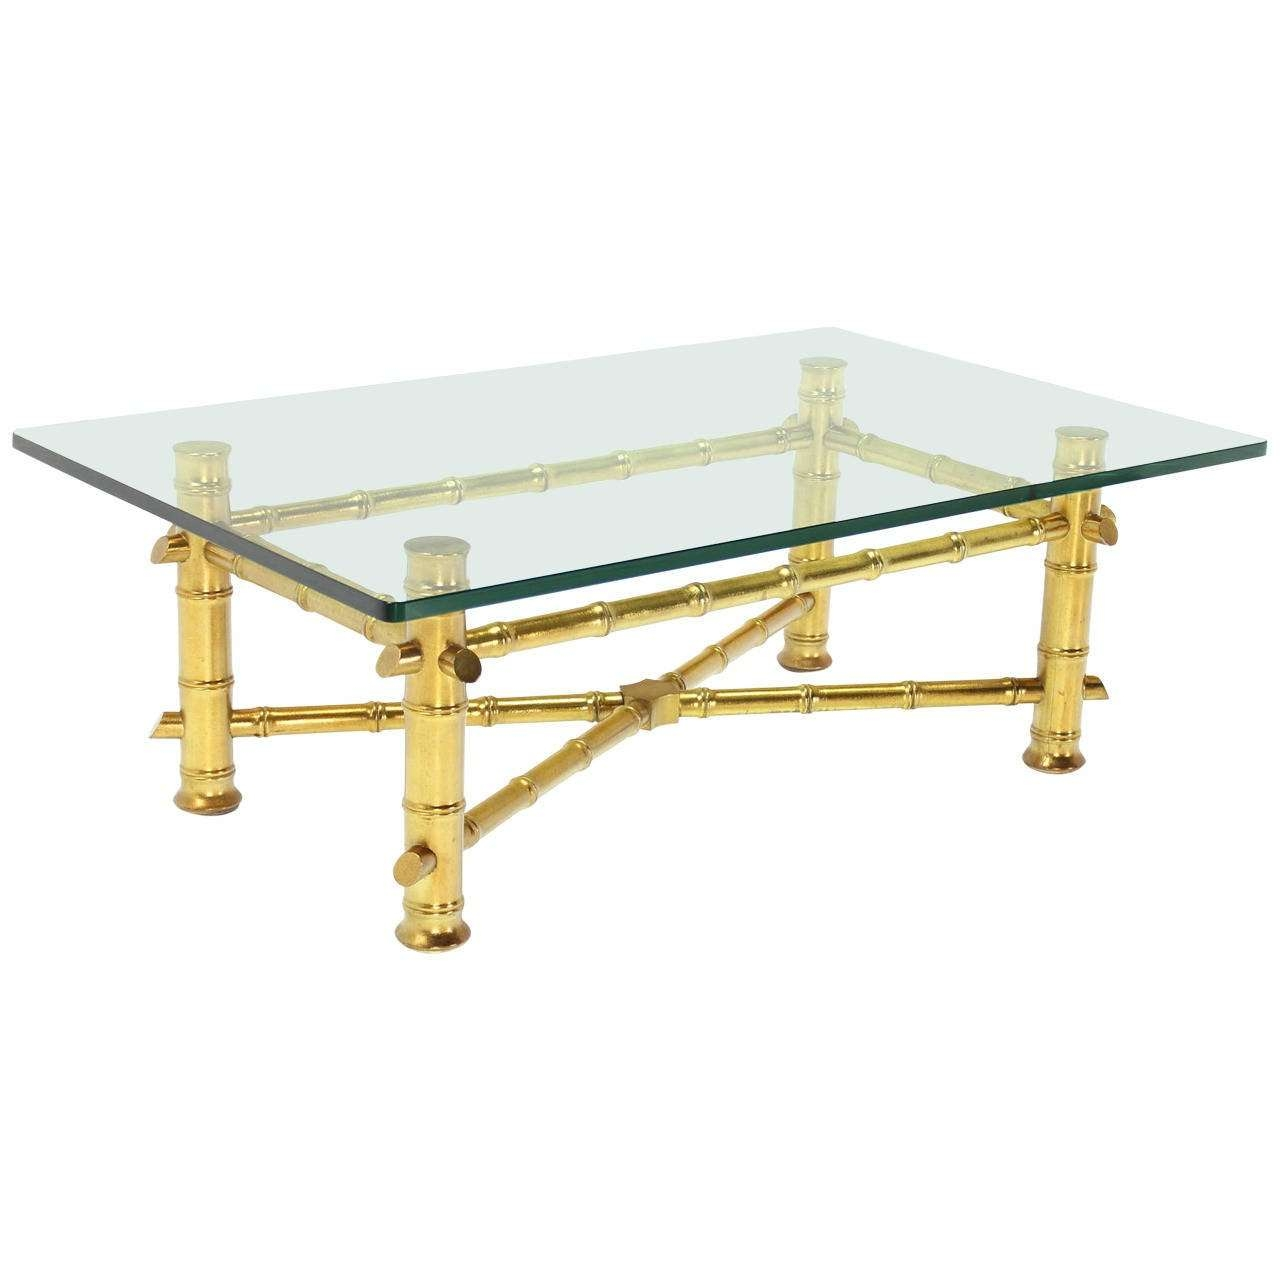 Gold Leaf Faux Bamboo Base Coffee Table With Thick Glass Top For With Most Current Thick Glass Coffee Table (View 8 of 20)